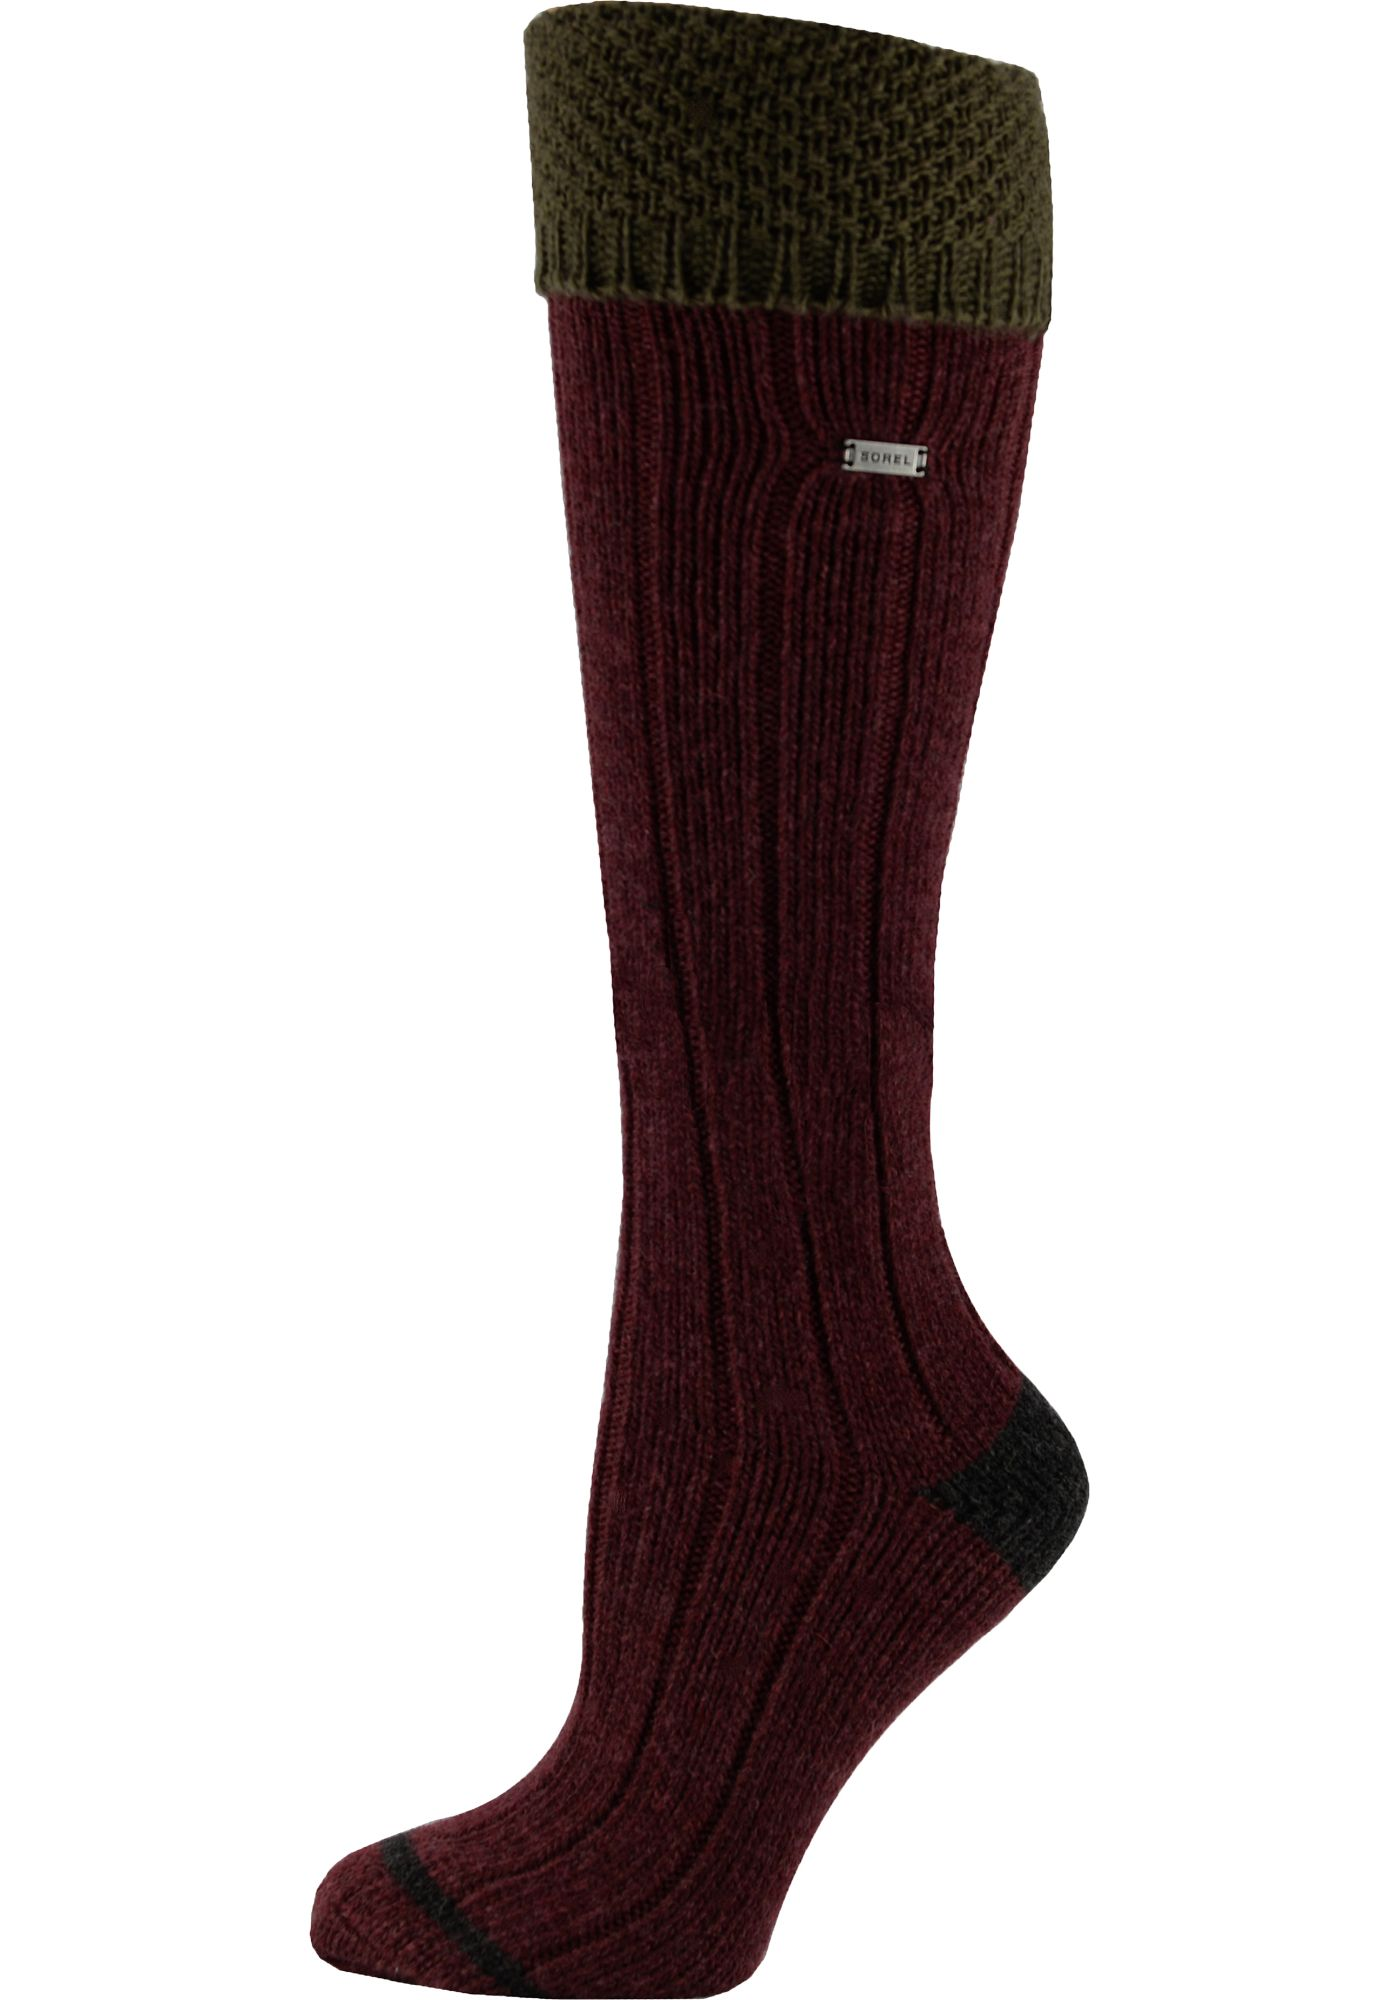 Sorel Women's Wool Turn Over Cuff Over the Calf Socks